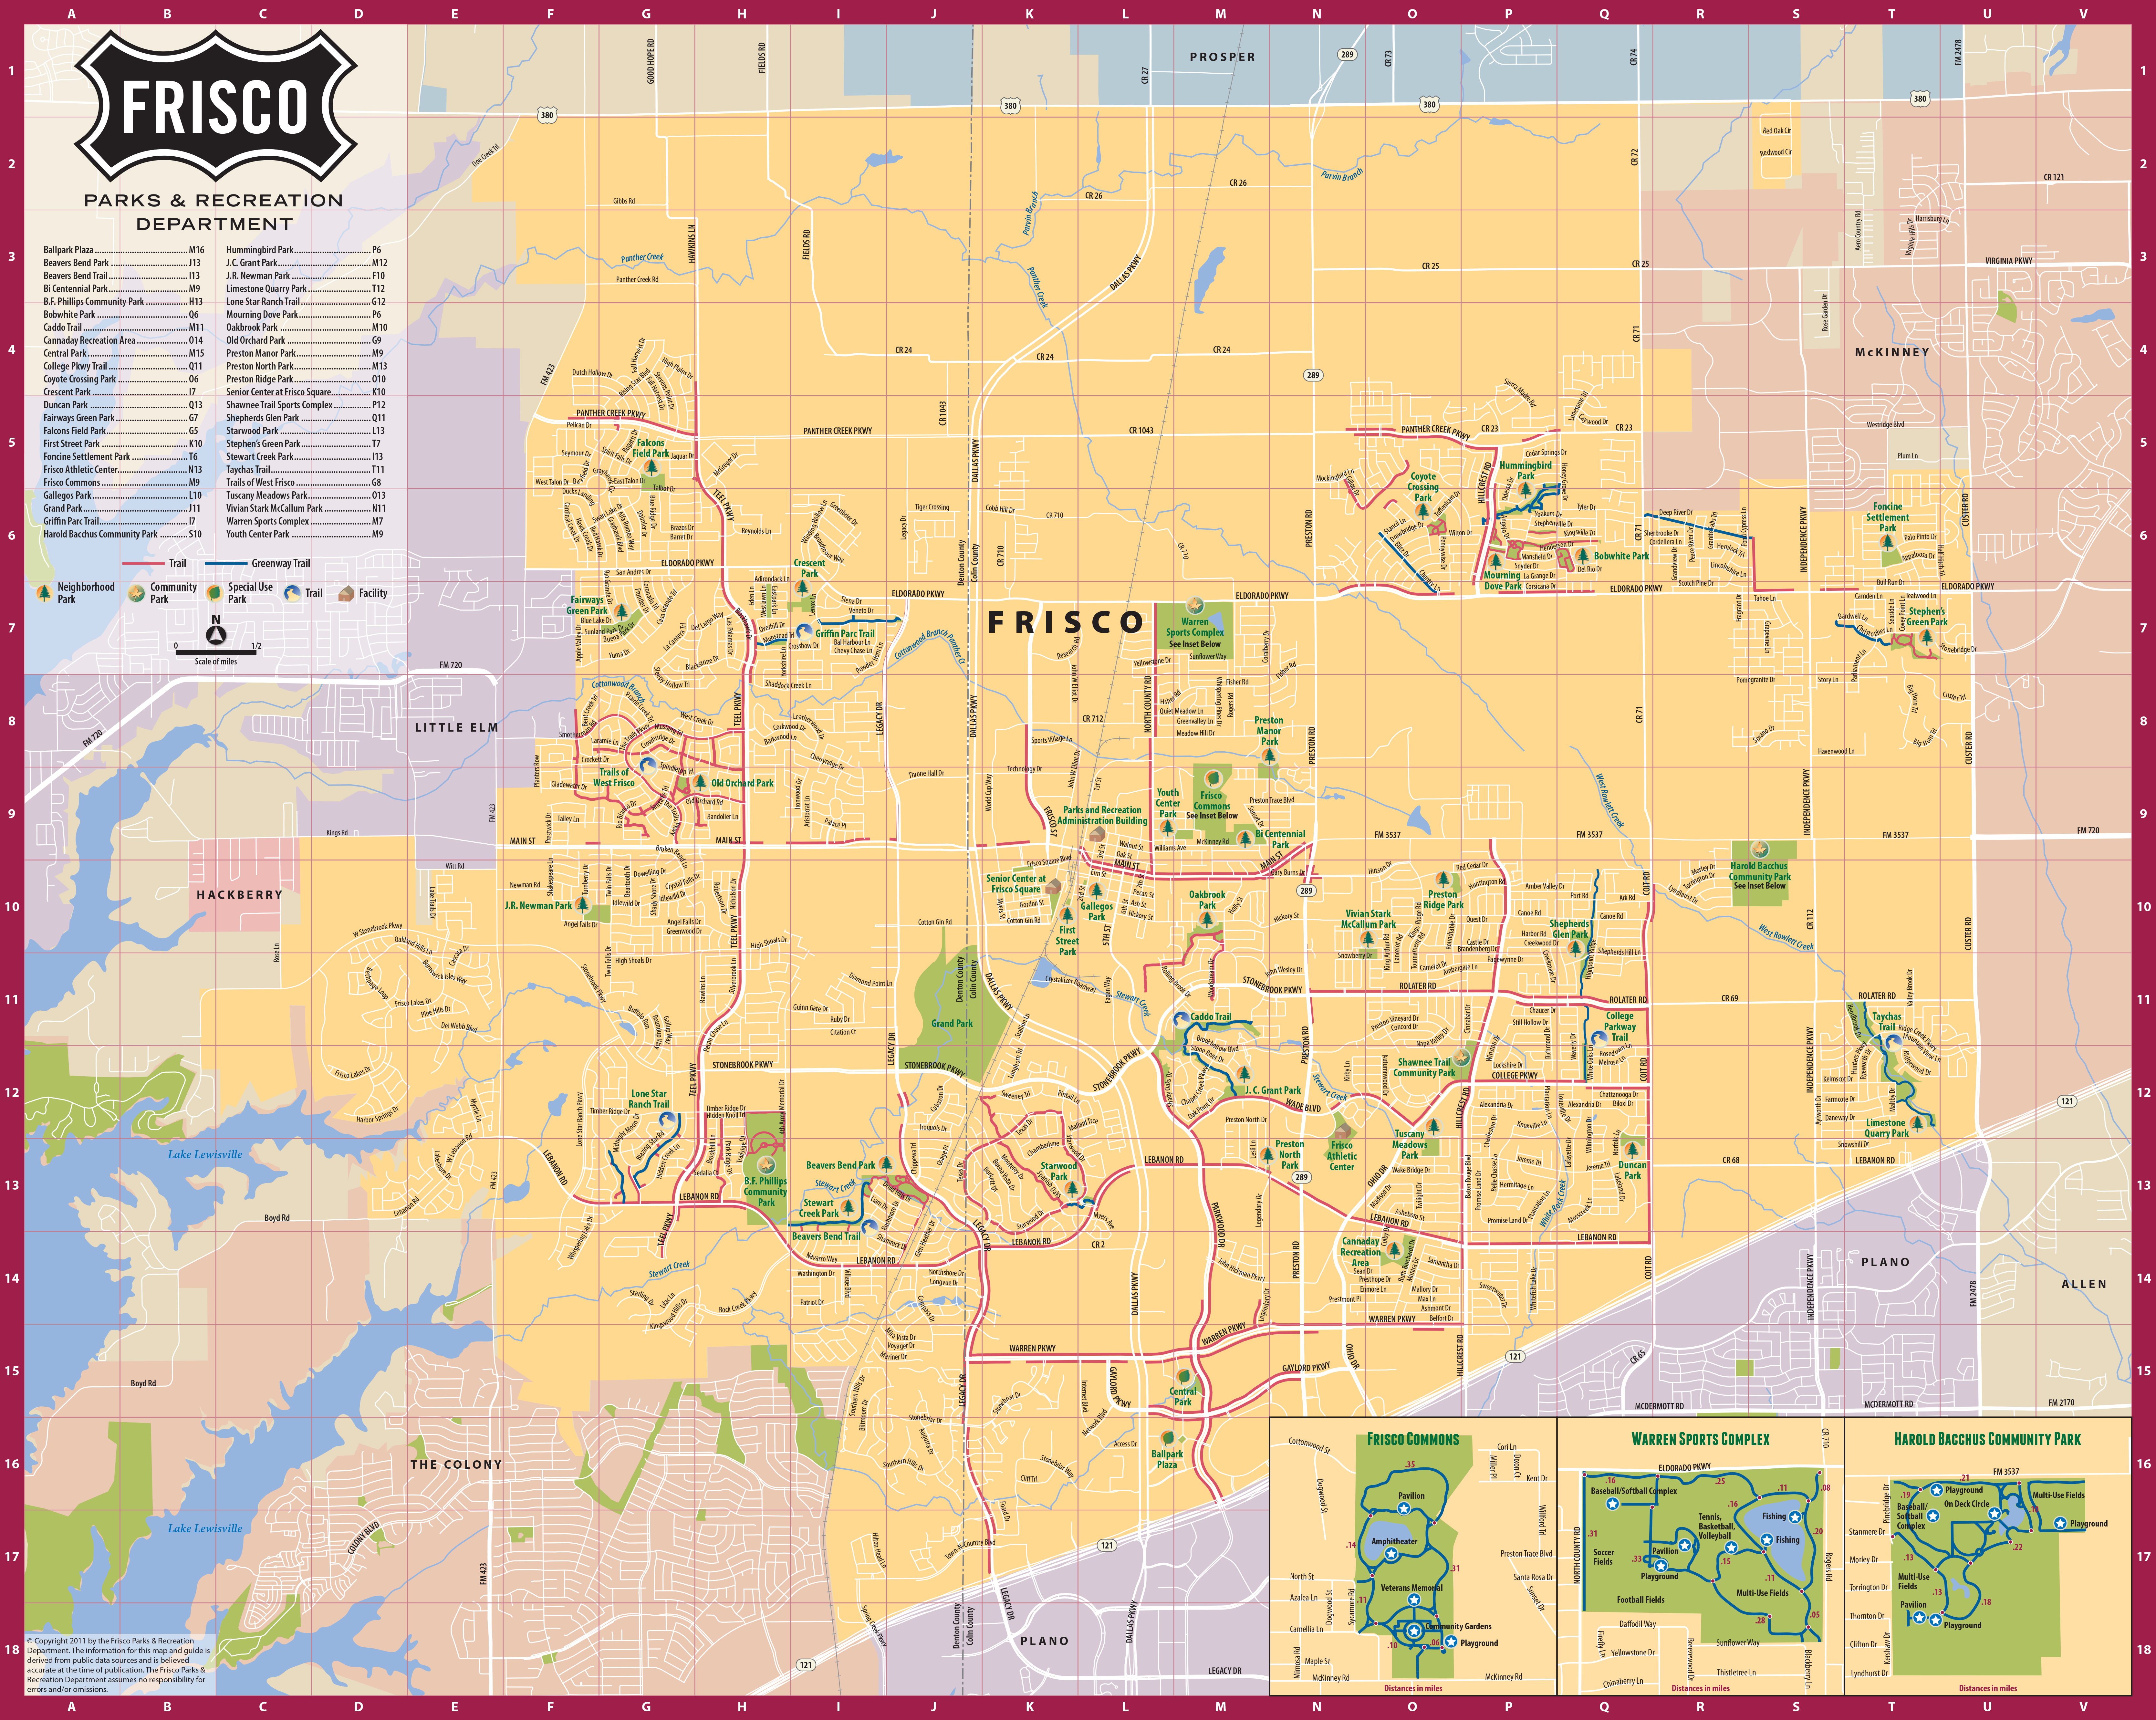 Map Of Frisco Tx Frisco Texas Official Convention & Visitors Site   Map of Frisco